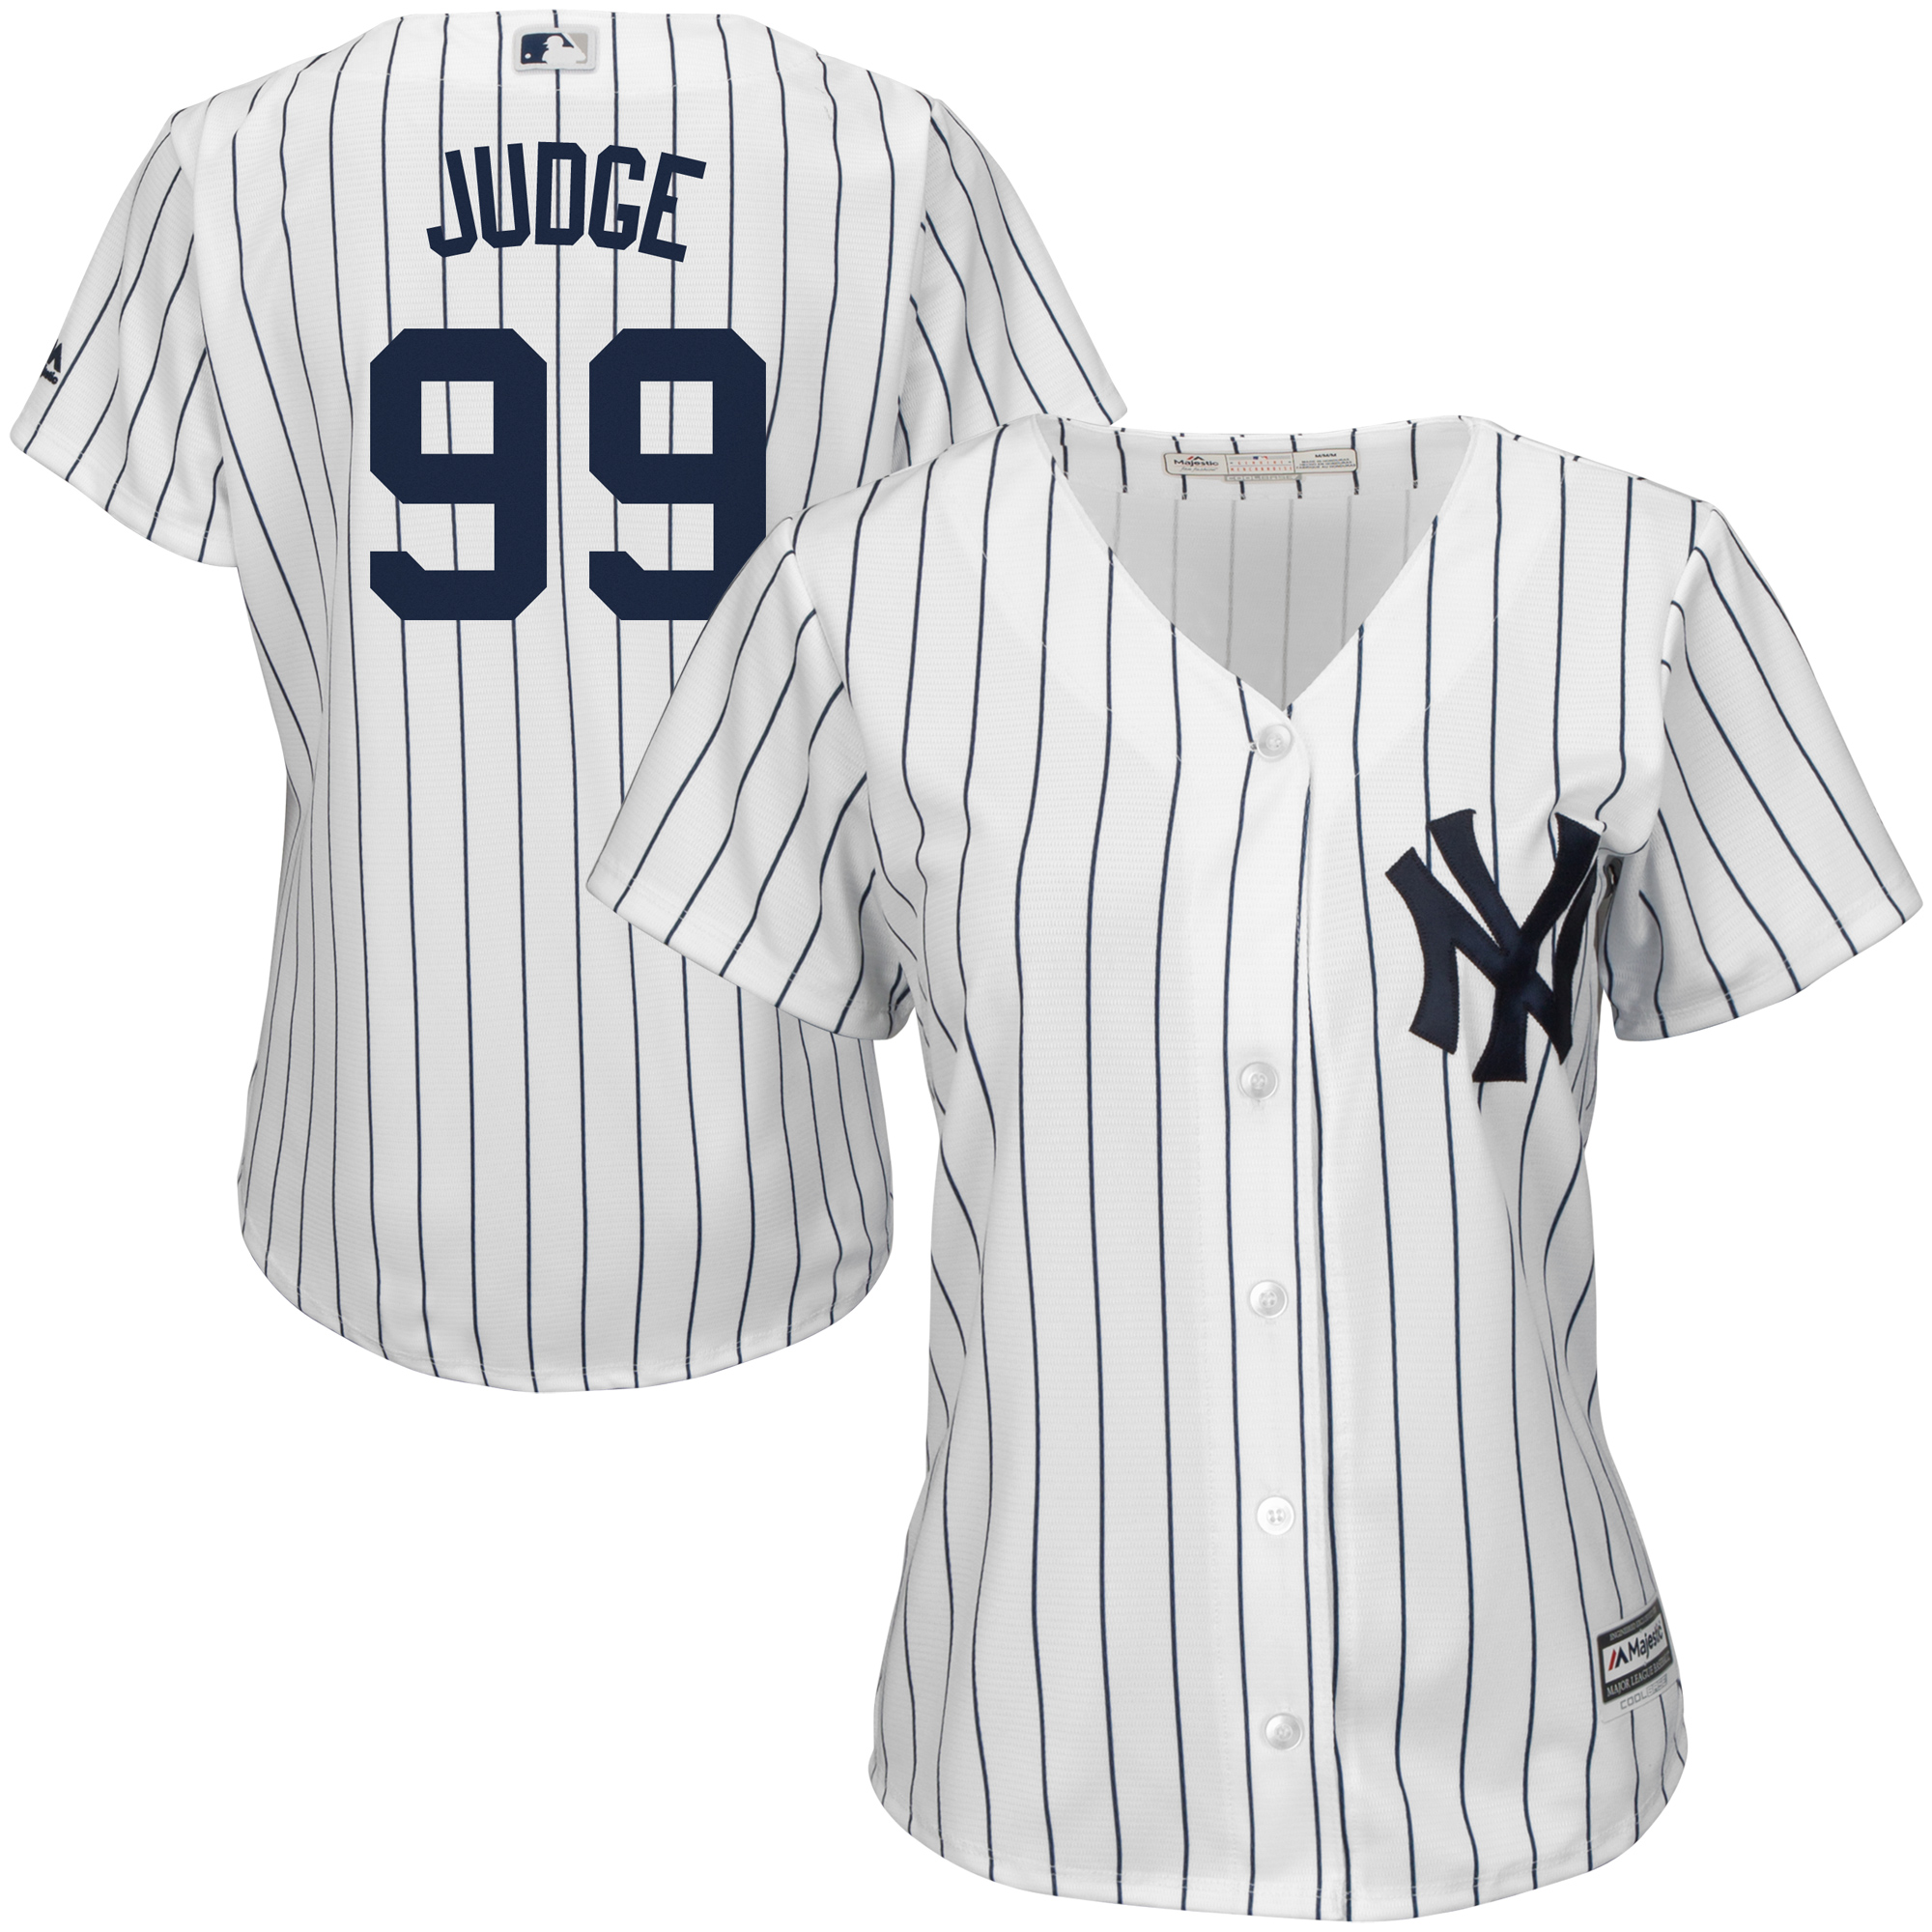 Aaron Judge New York Yankees Majestic Women's Home Cool Base Player Jersey White by MAJESTIC LSG